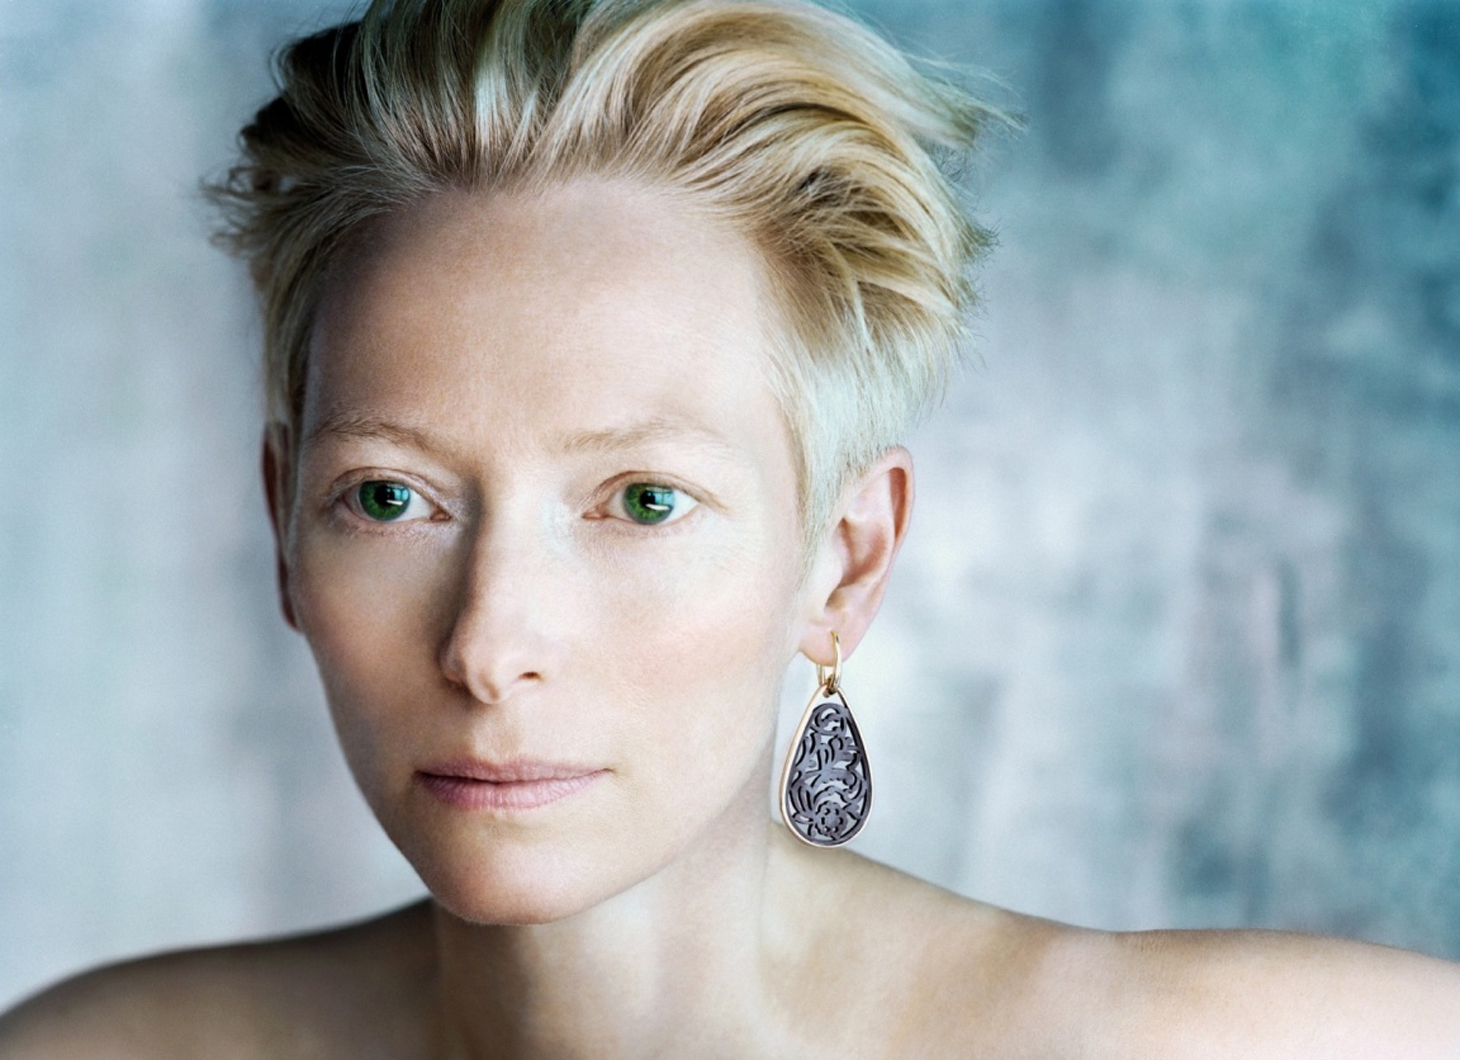 ICloud Tilda Swinton nudes (77 foto and video), Topless, Cleavage, Twitter, butt 2018